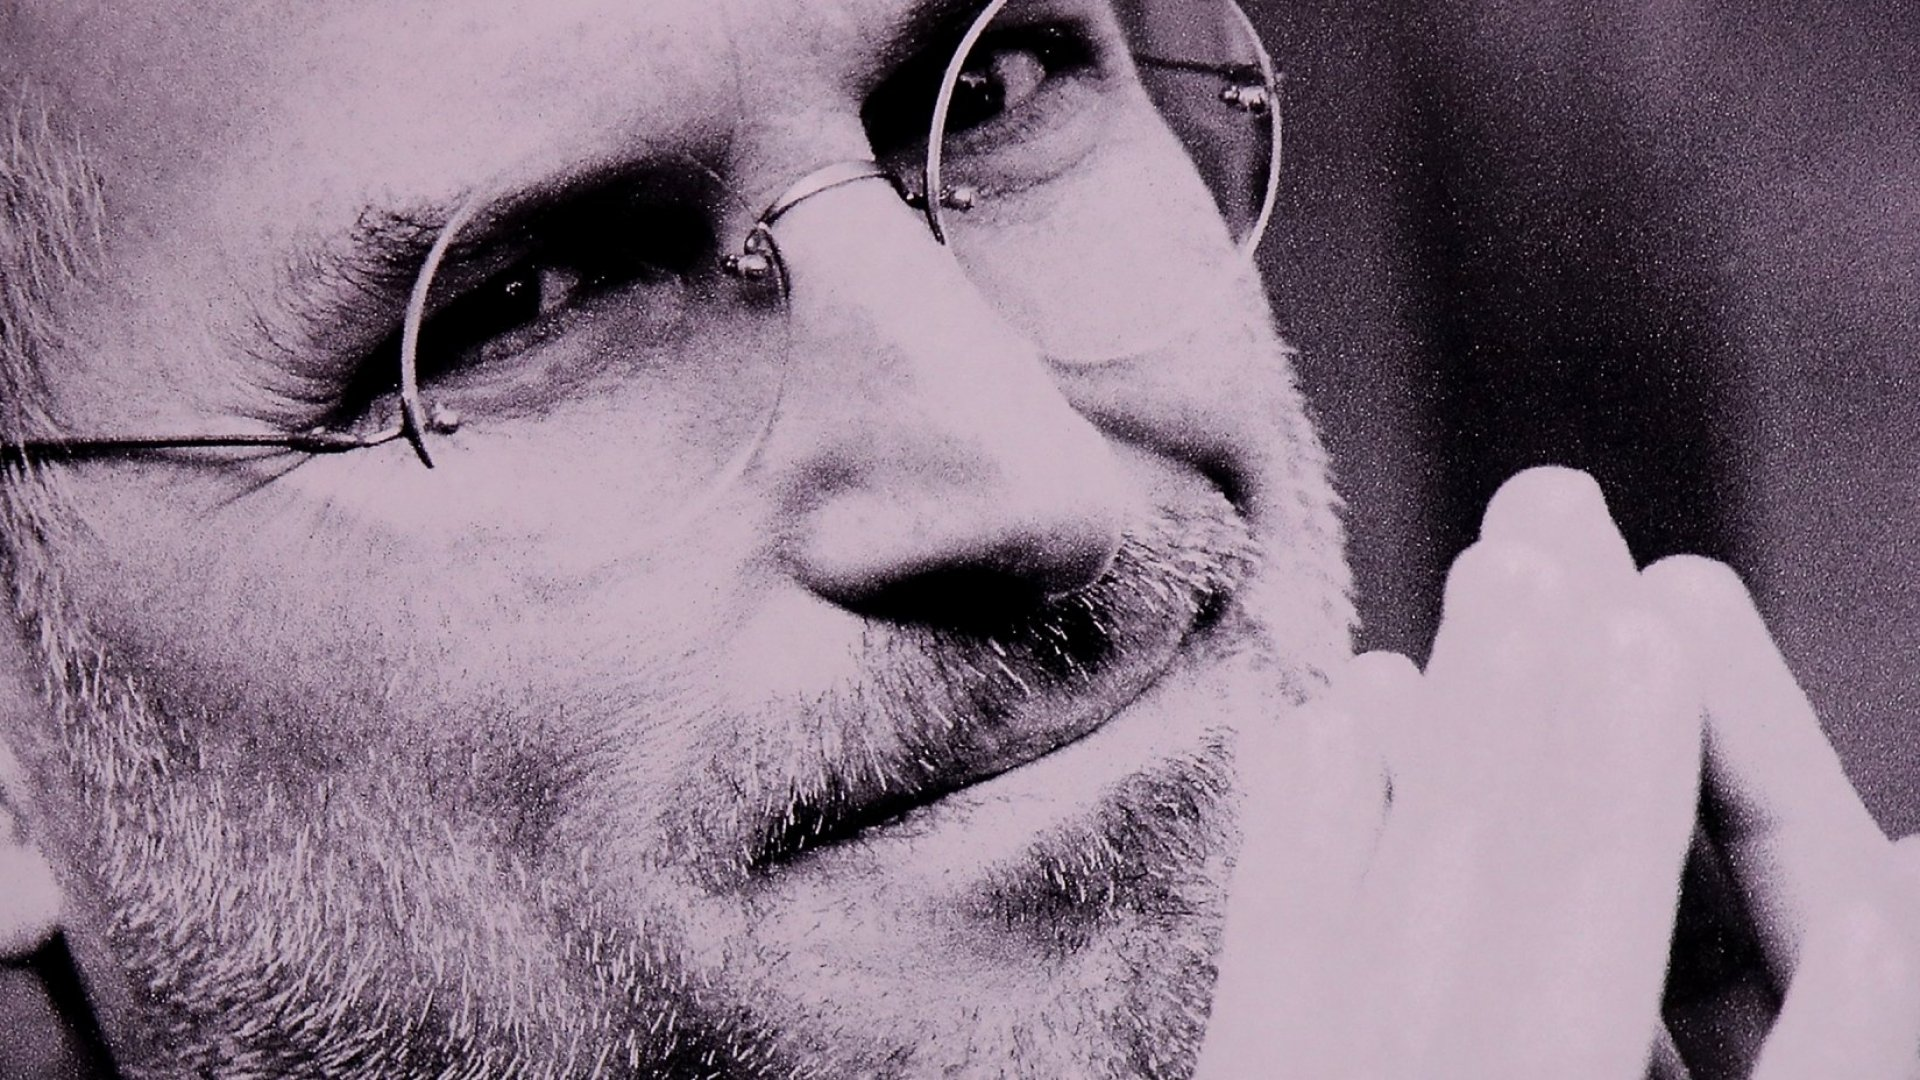 Steve Jobs Said This Approach to Overcoming Adversity and Loss Never Let Him Down--and Made All the Difference In His Life